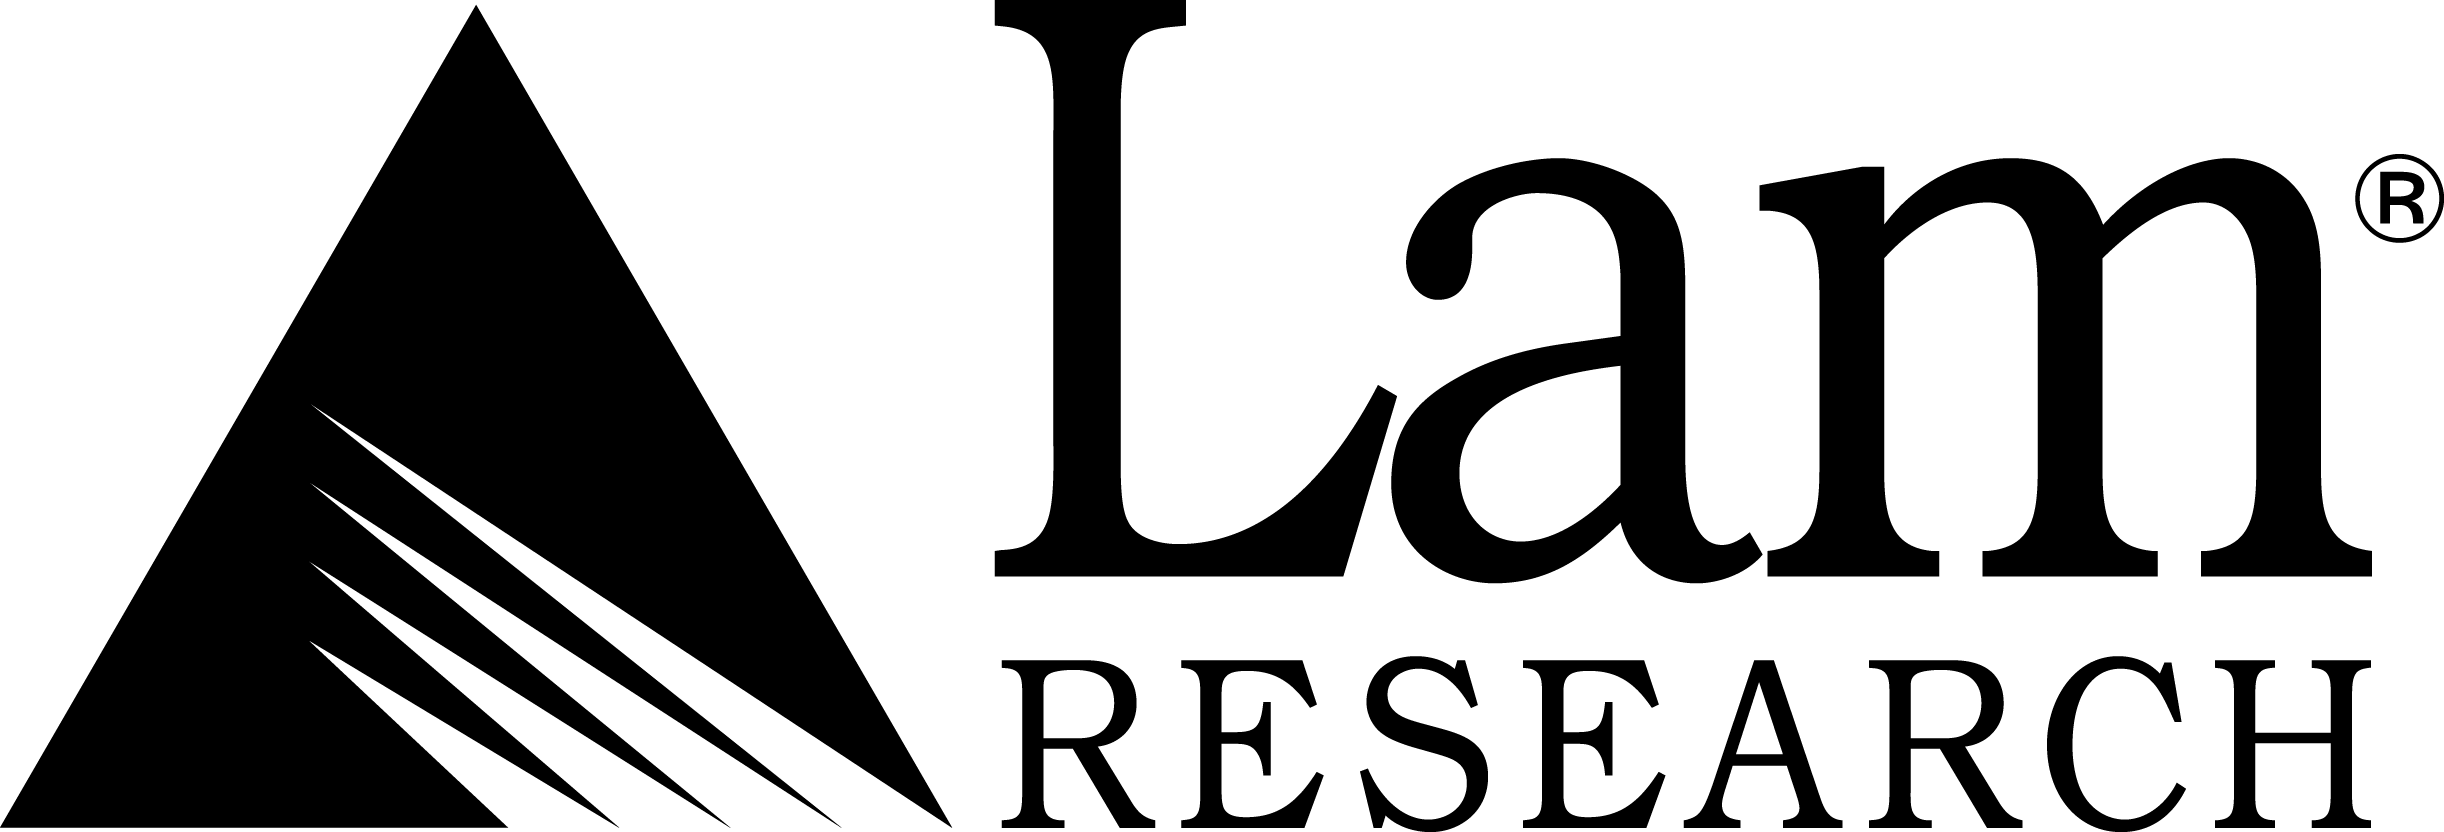 Lam Research logo Black